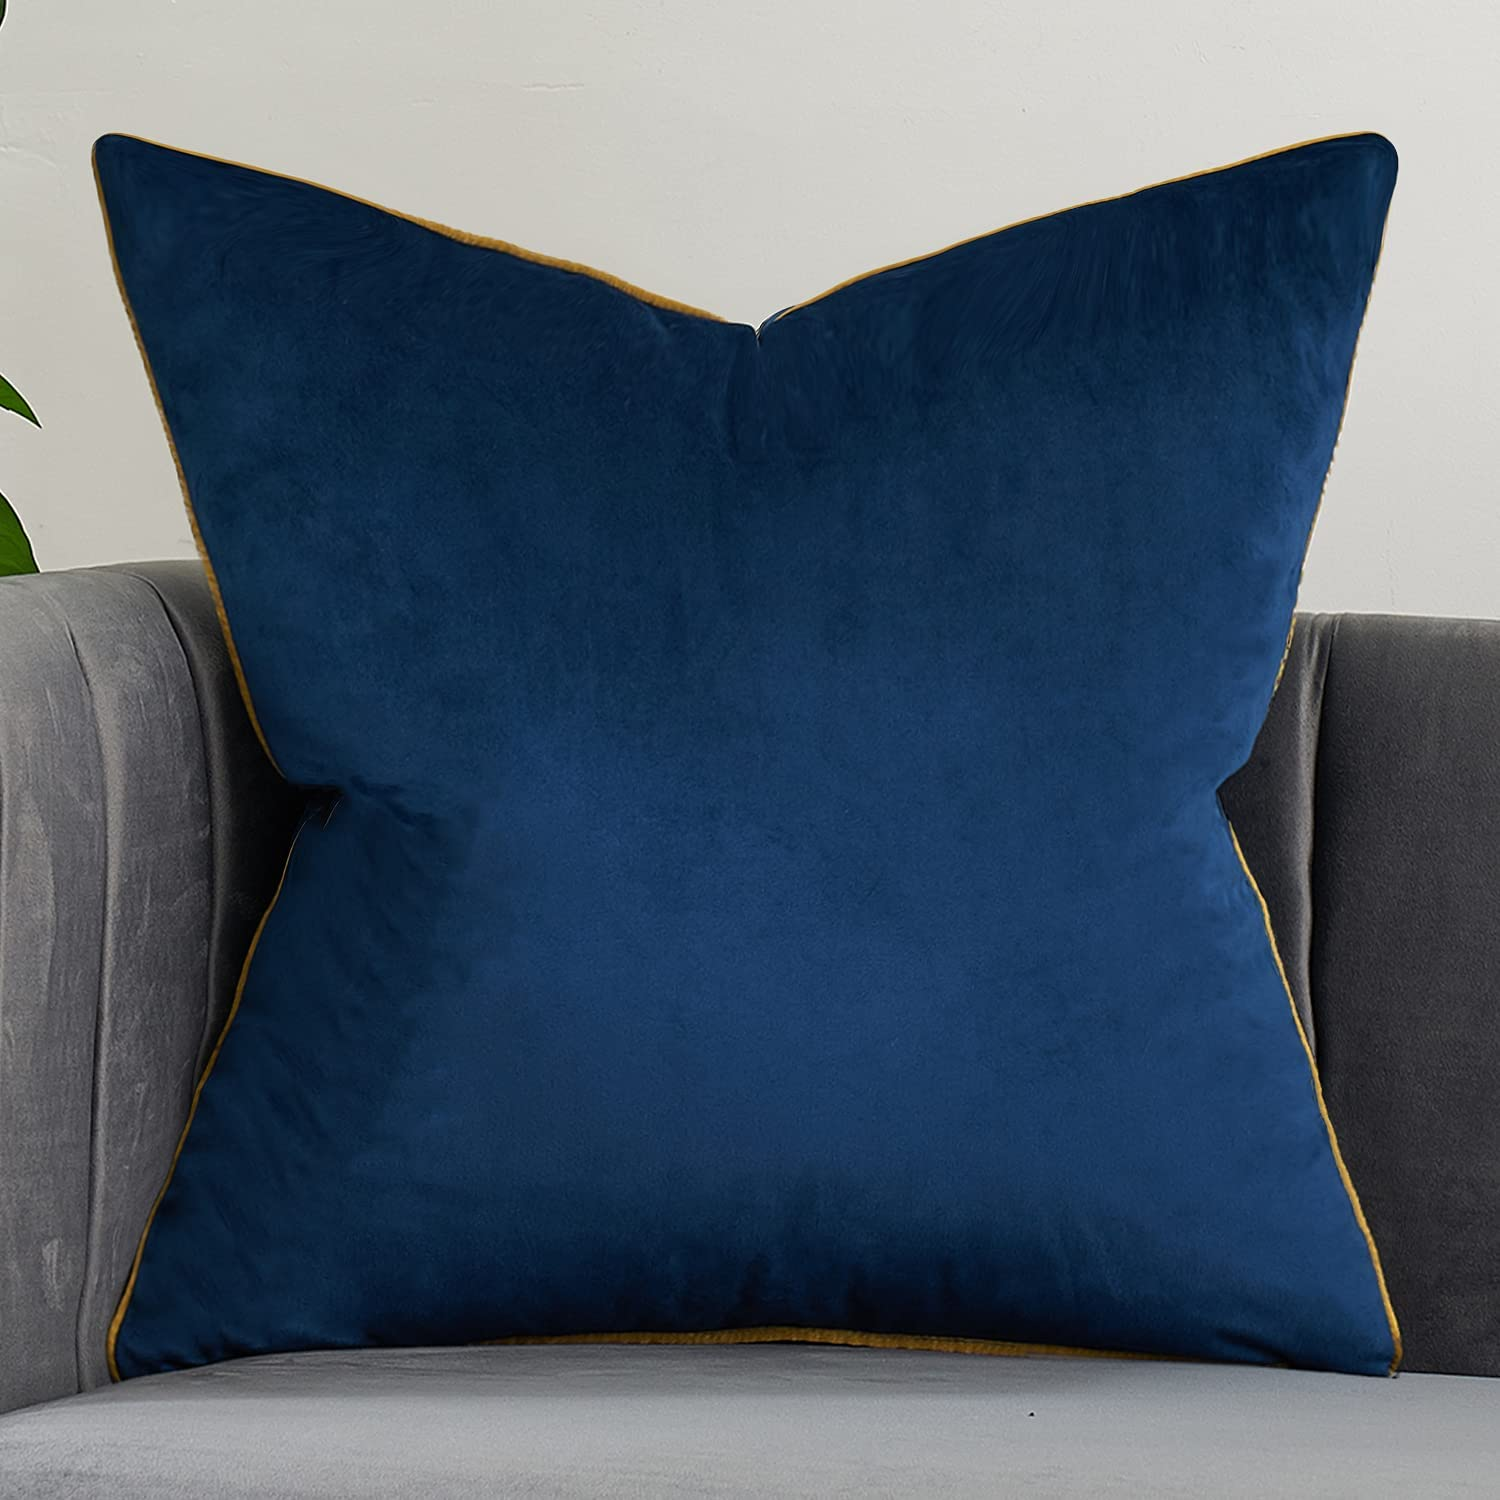 Avigers 18 x 18 Inches Navy Blue Solid Cushion Case Luxury European Throw Pillow Cover Decorative Pillow for Couch Living Room Bedroom Car